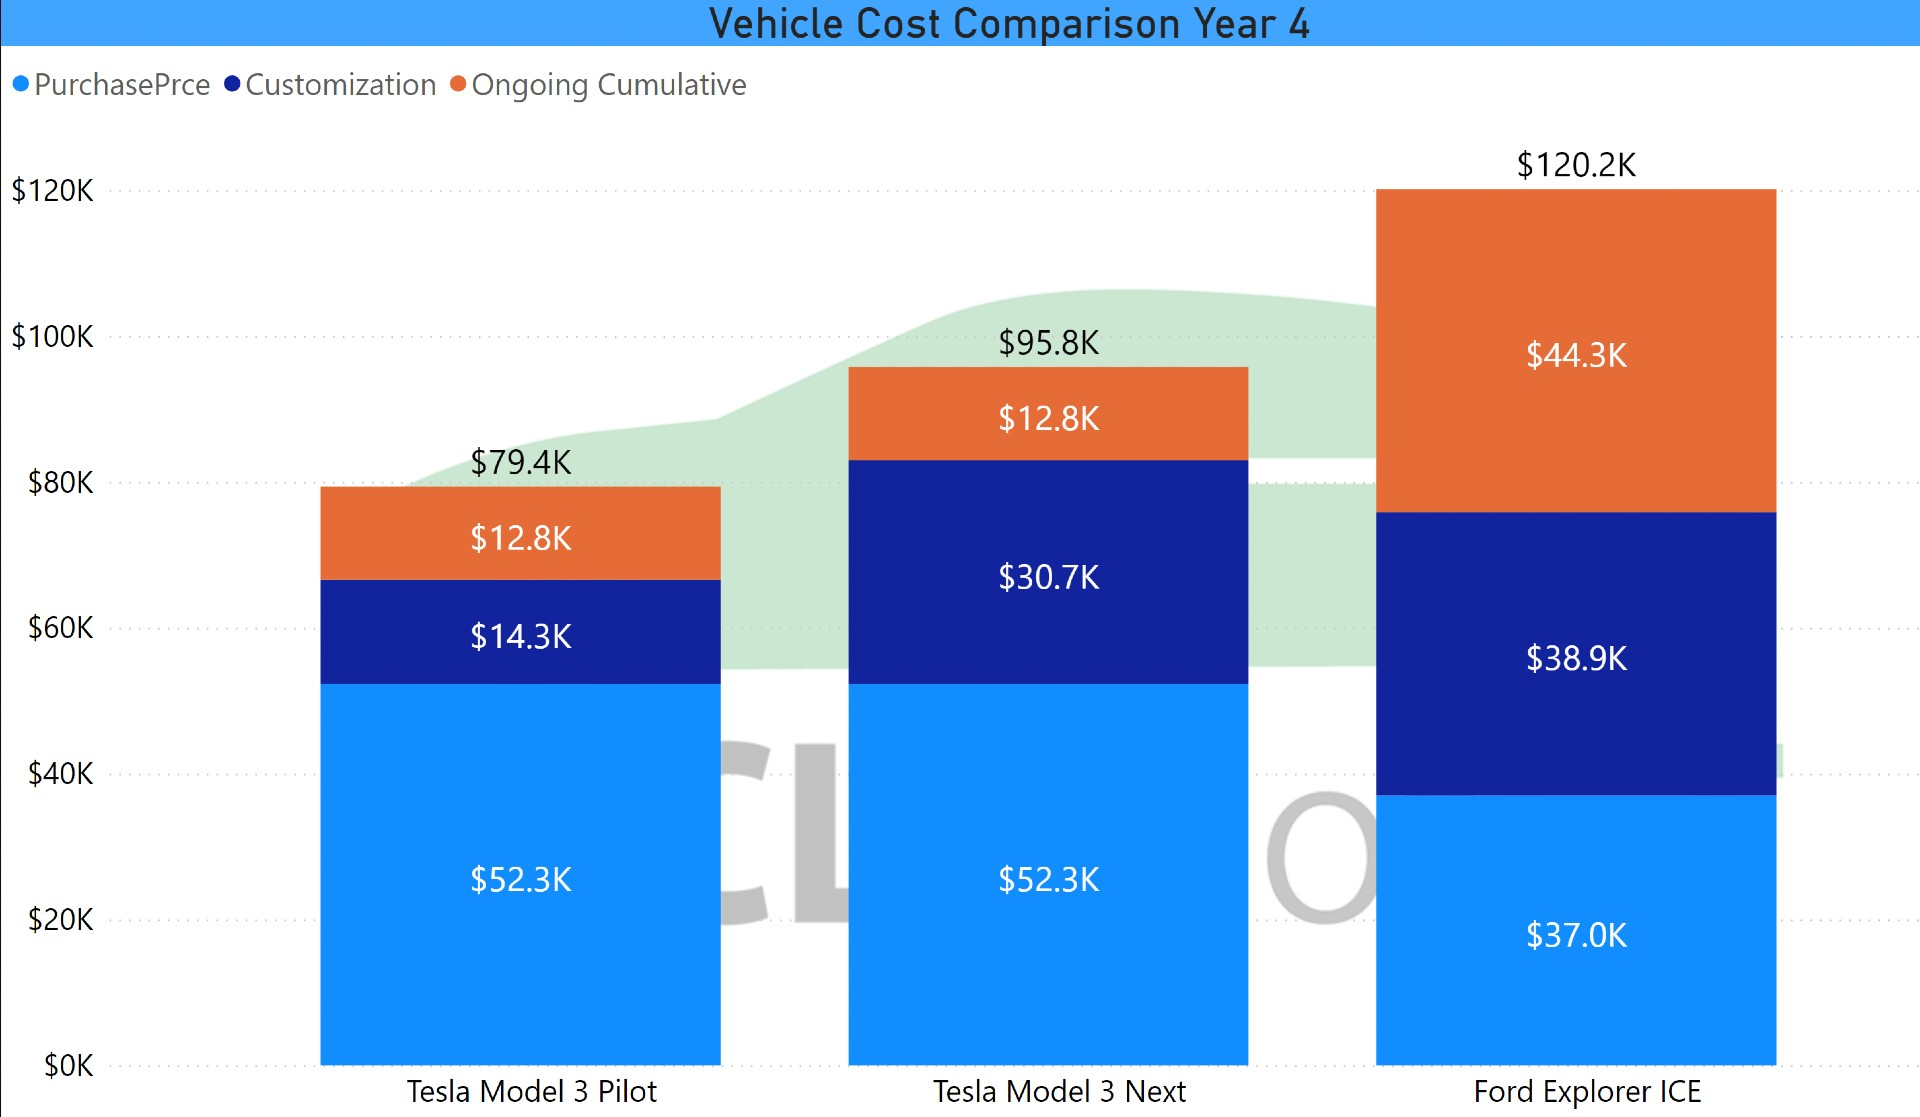 V2-of-Vehicle-Cost-Comparison-Year-4